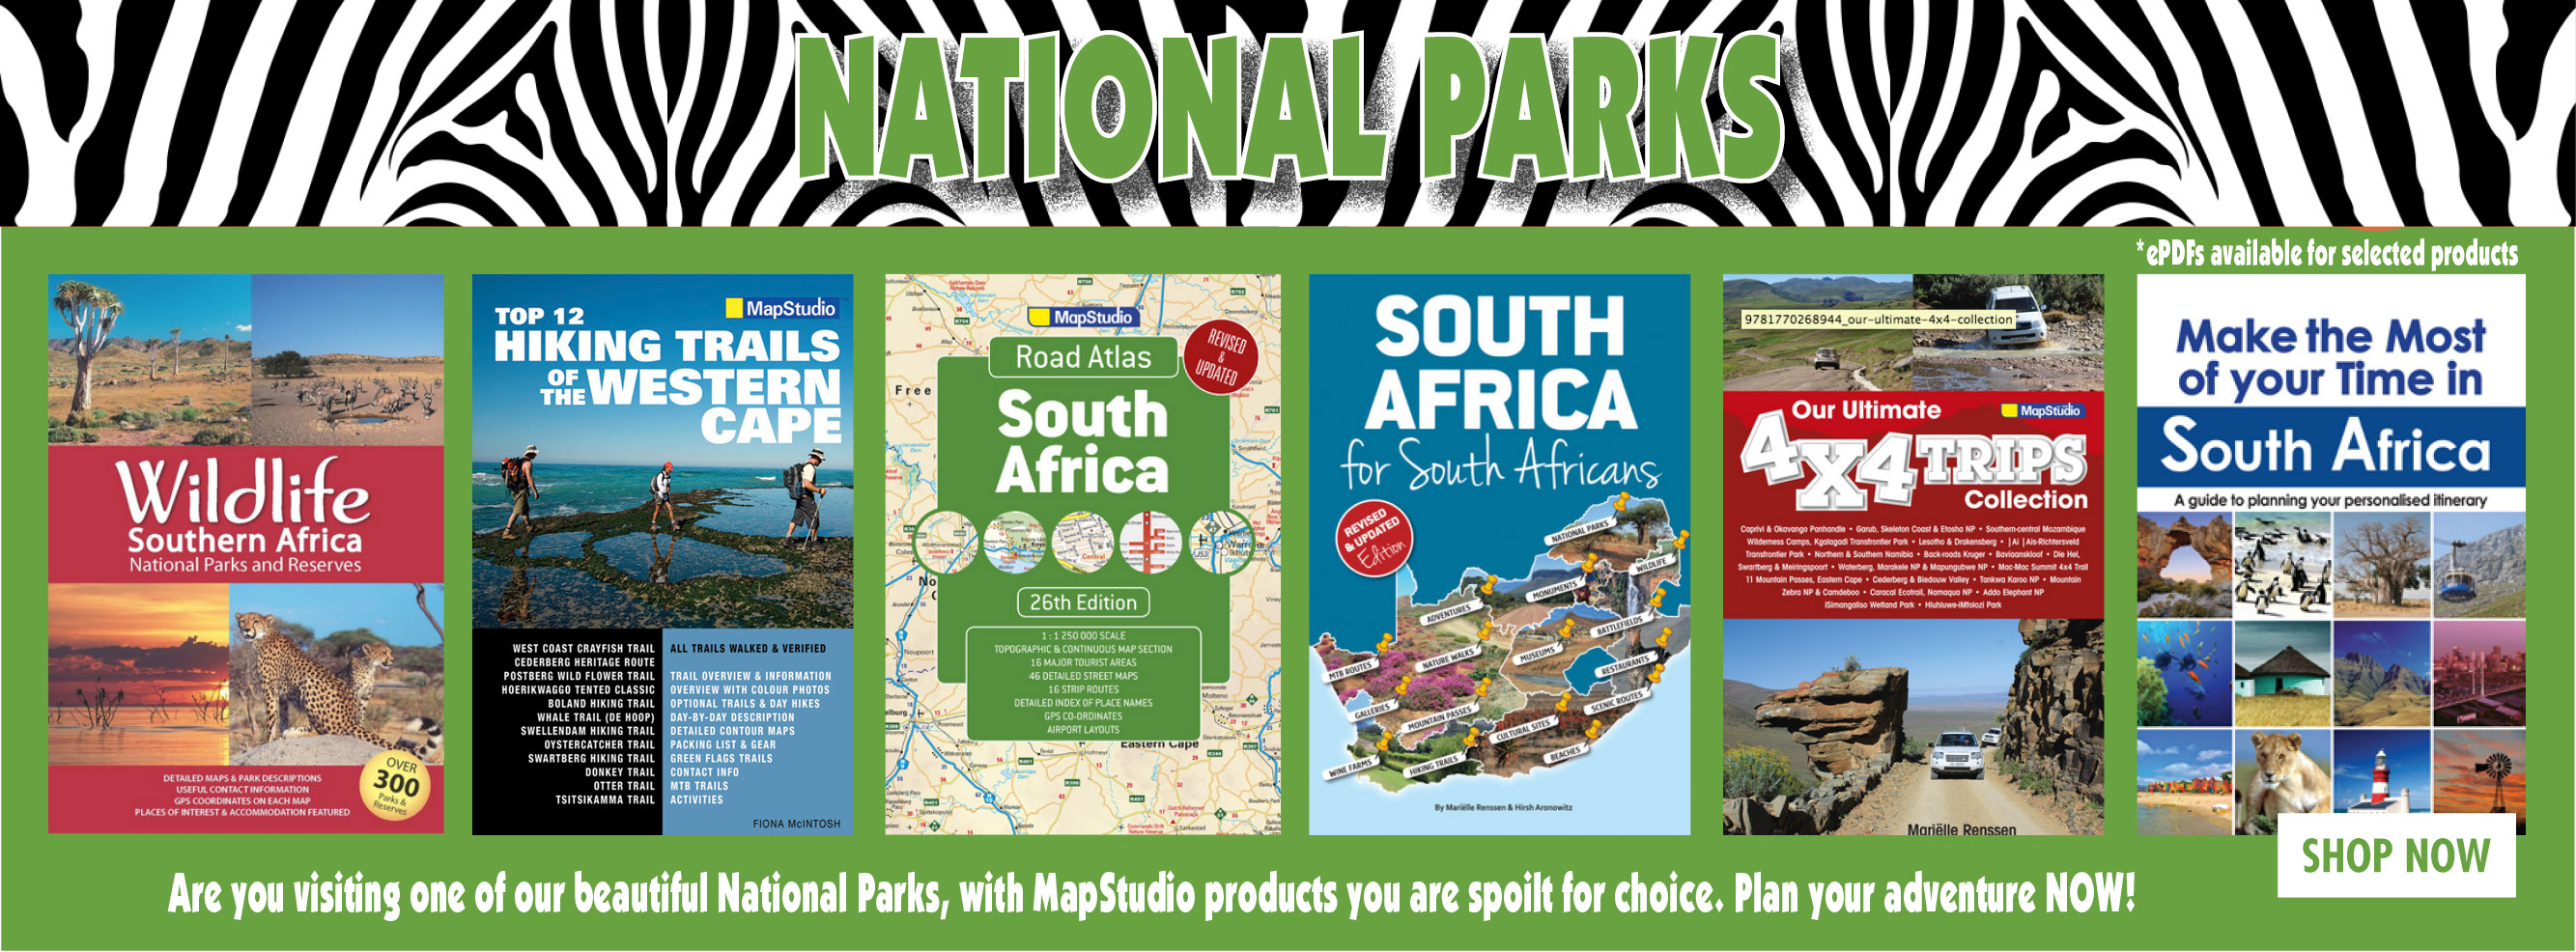 National Reserves and Parks in South Africa